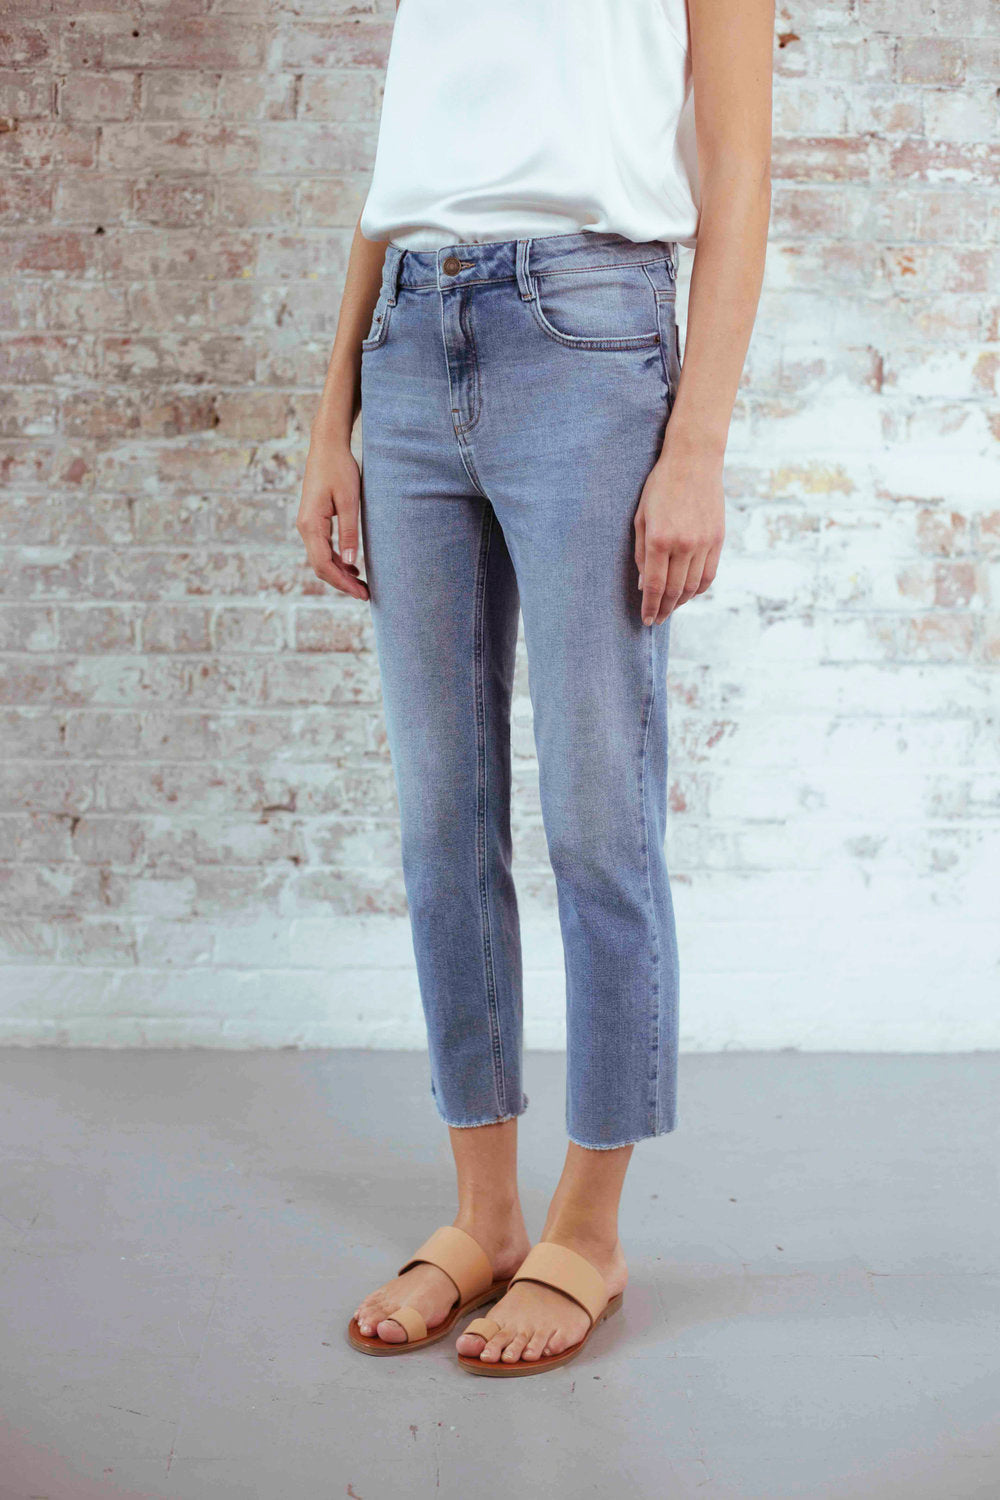 Radclyffe Slim Shadow Pocket Jeans in Light Indigo